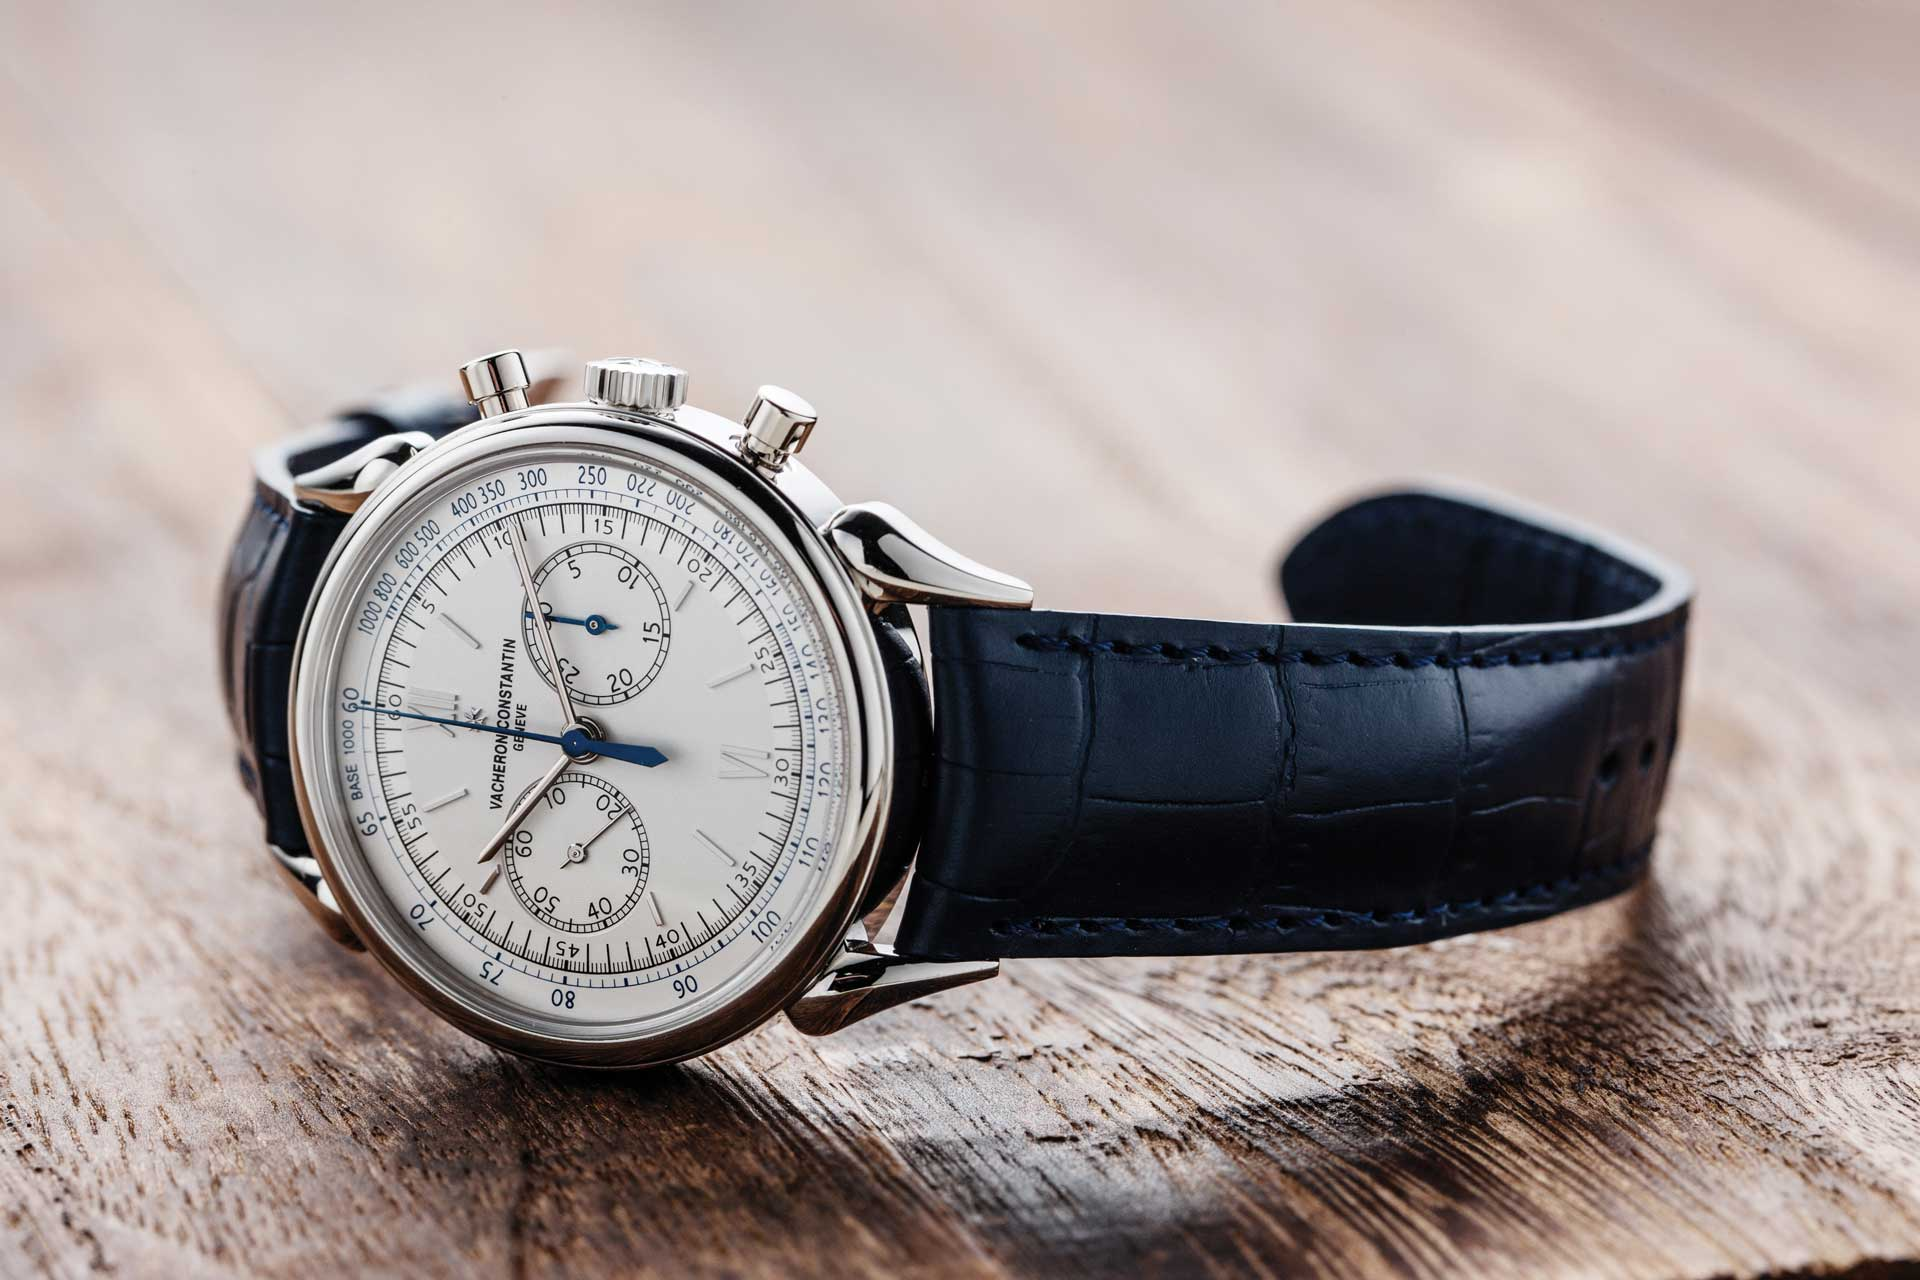 Vacheron Constantin Historiques Cornes de vache 1955 ref. 5000H/000P-B058 in platinum that was launched at Watches & Wonders 2015, in Hong Kong; the watch was powered by the calibre 1142 (©Revolution)